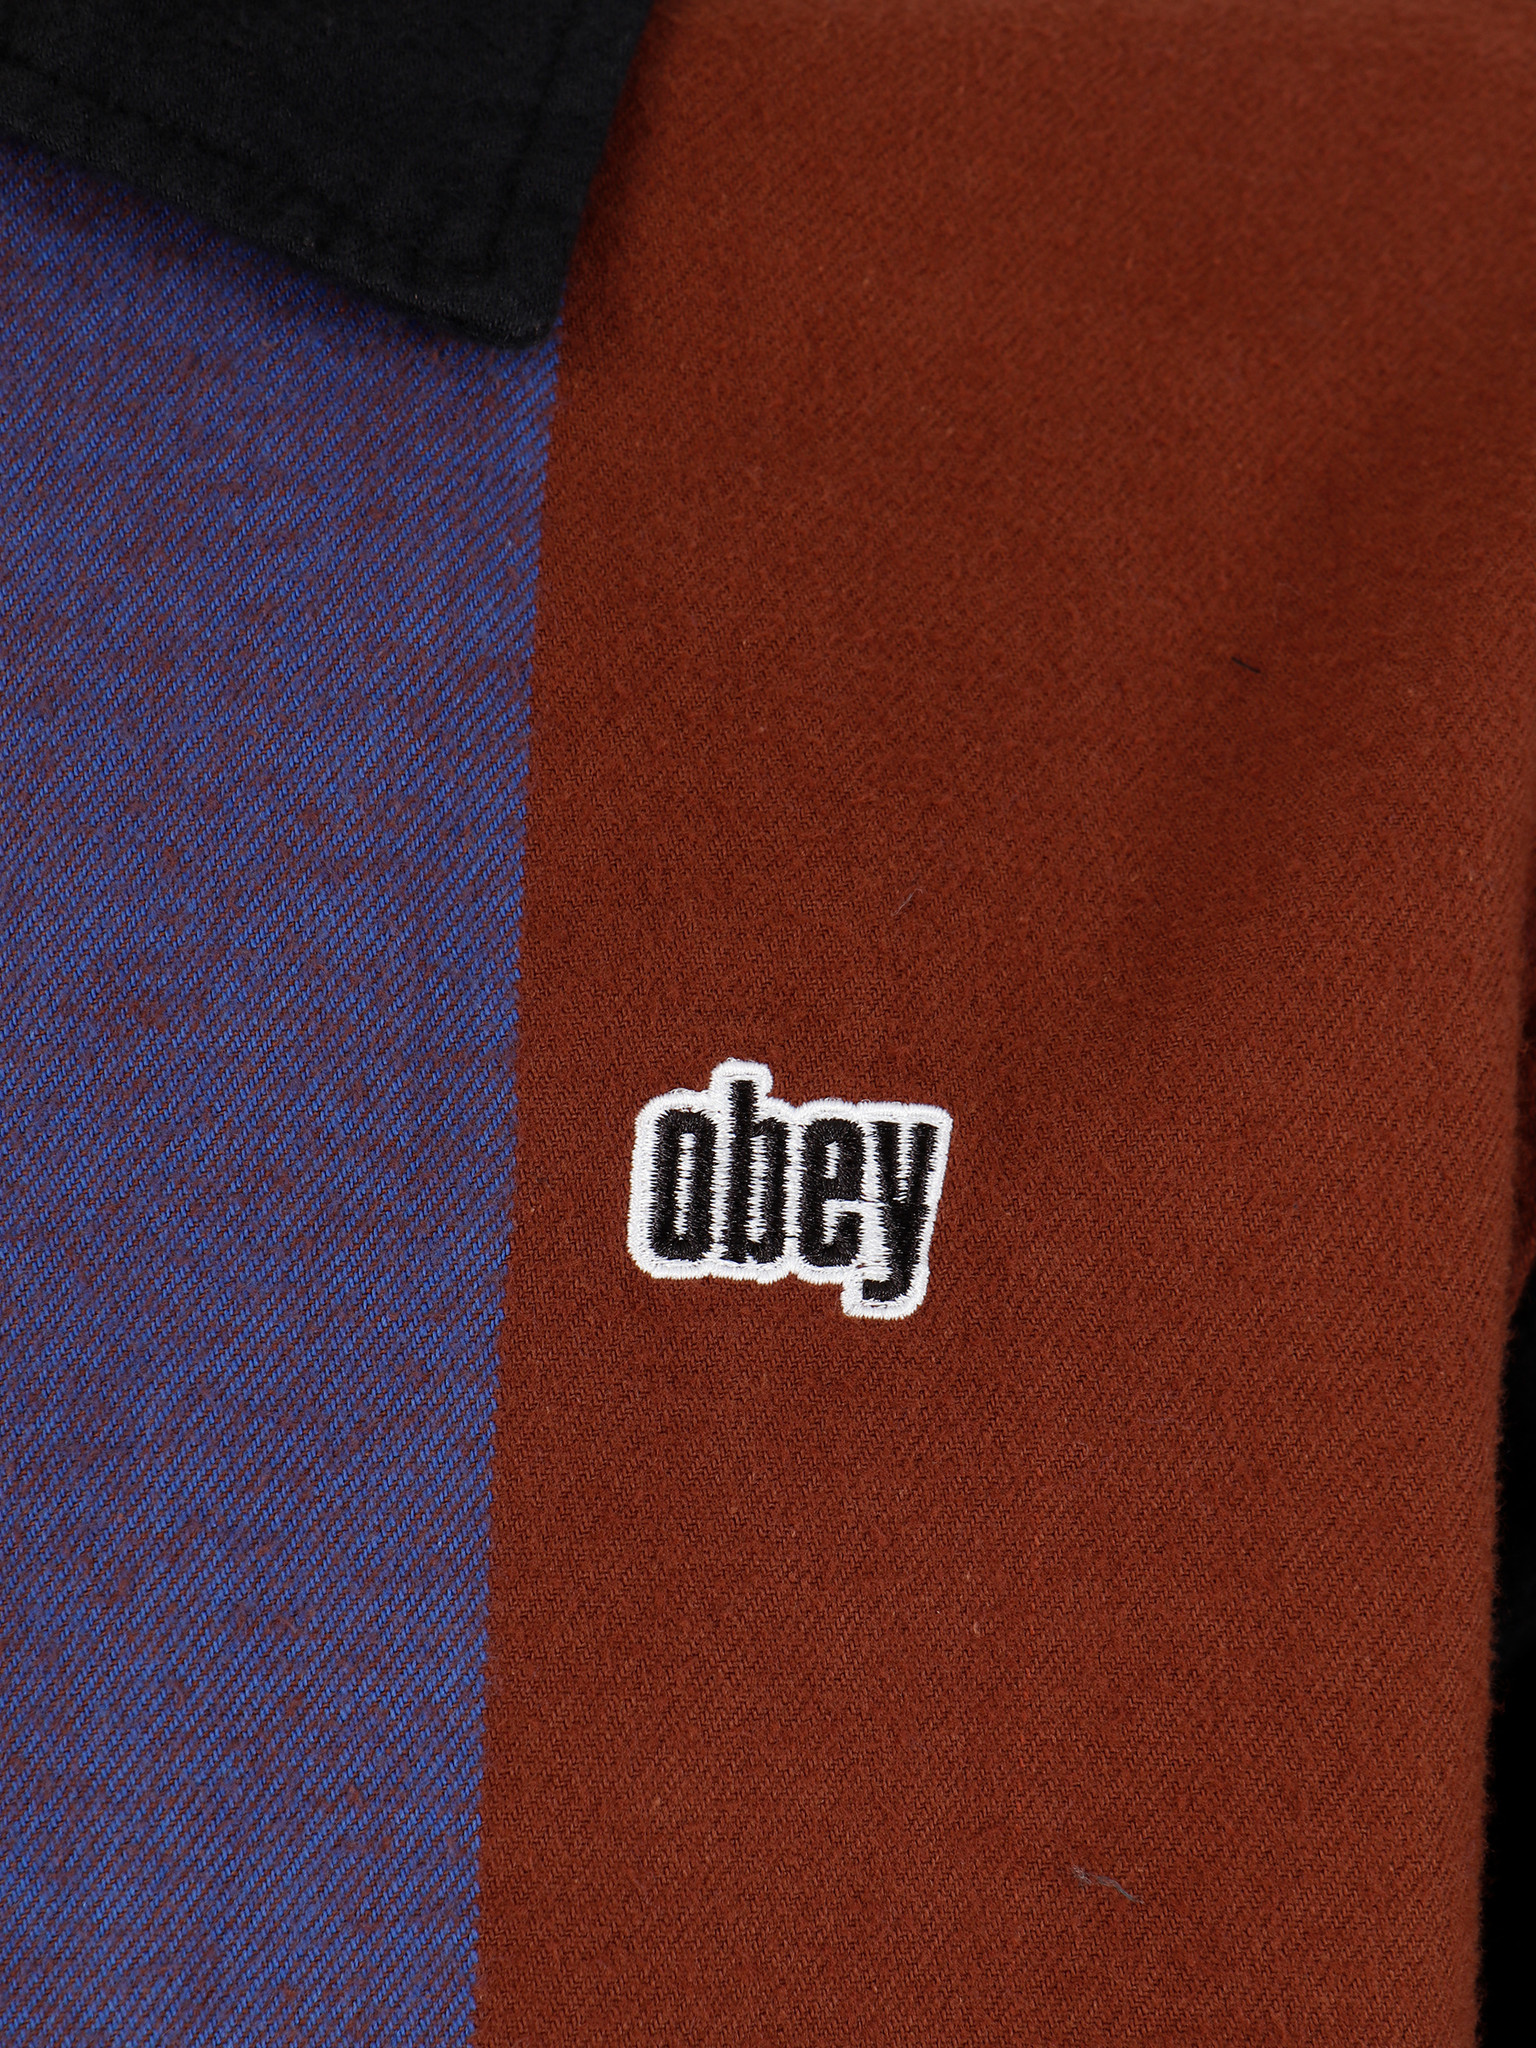 Obey Obey Shields Zip Brown Multi 181200280Bwm